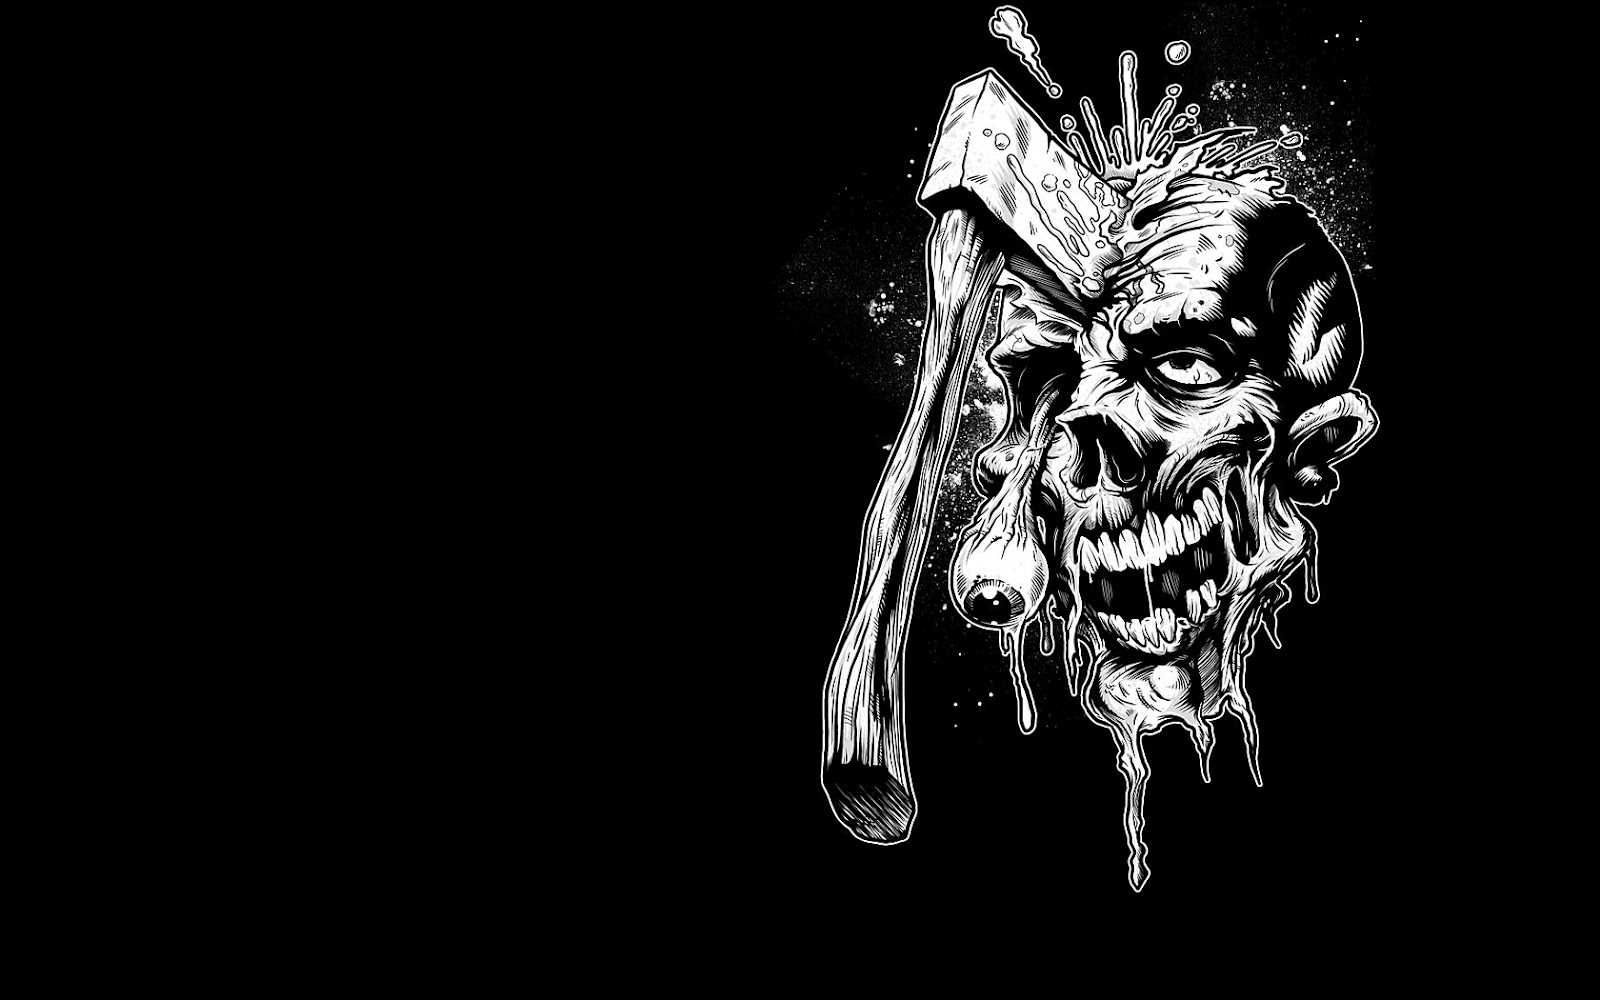 Wallpapers hd wallpapers de zombies 1920x1080 hd variados for Wallpapers animados hd